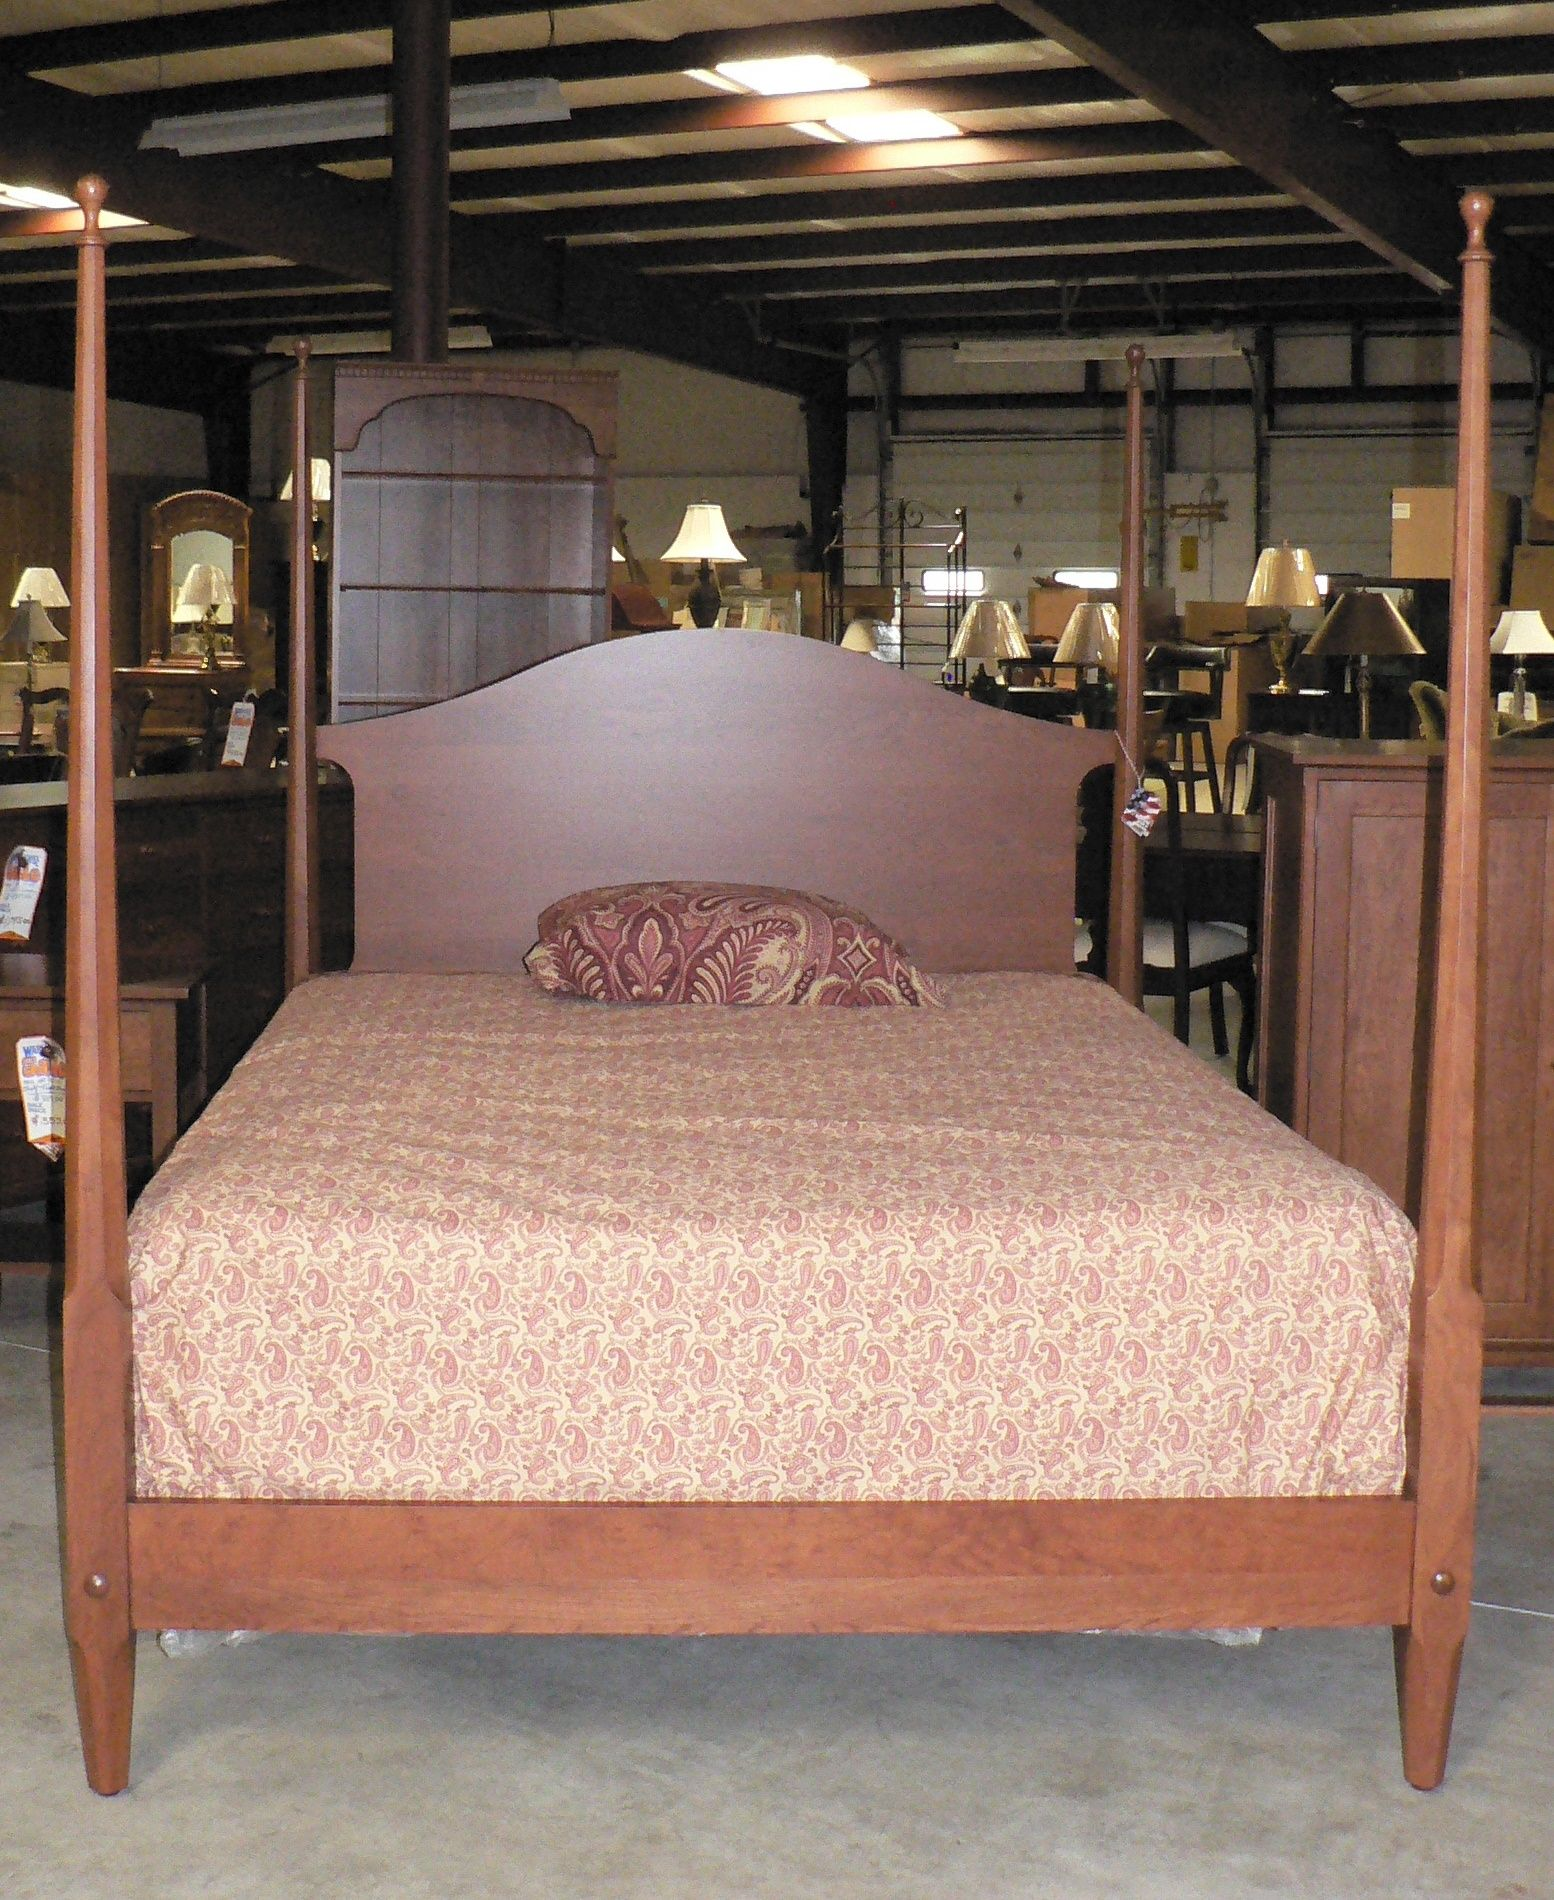 Antique Pencil Post Rice Bed Gray White And Copper Bedroom: Cherry Shaker Pencil Post Bed By Colonial Furniture (570